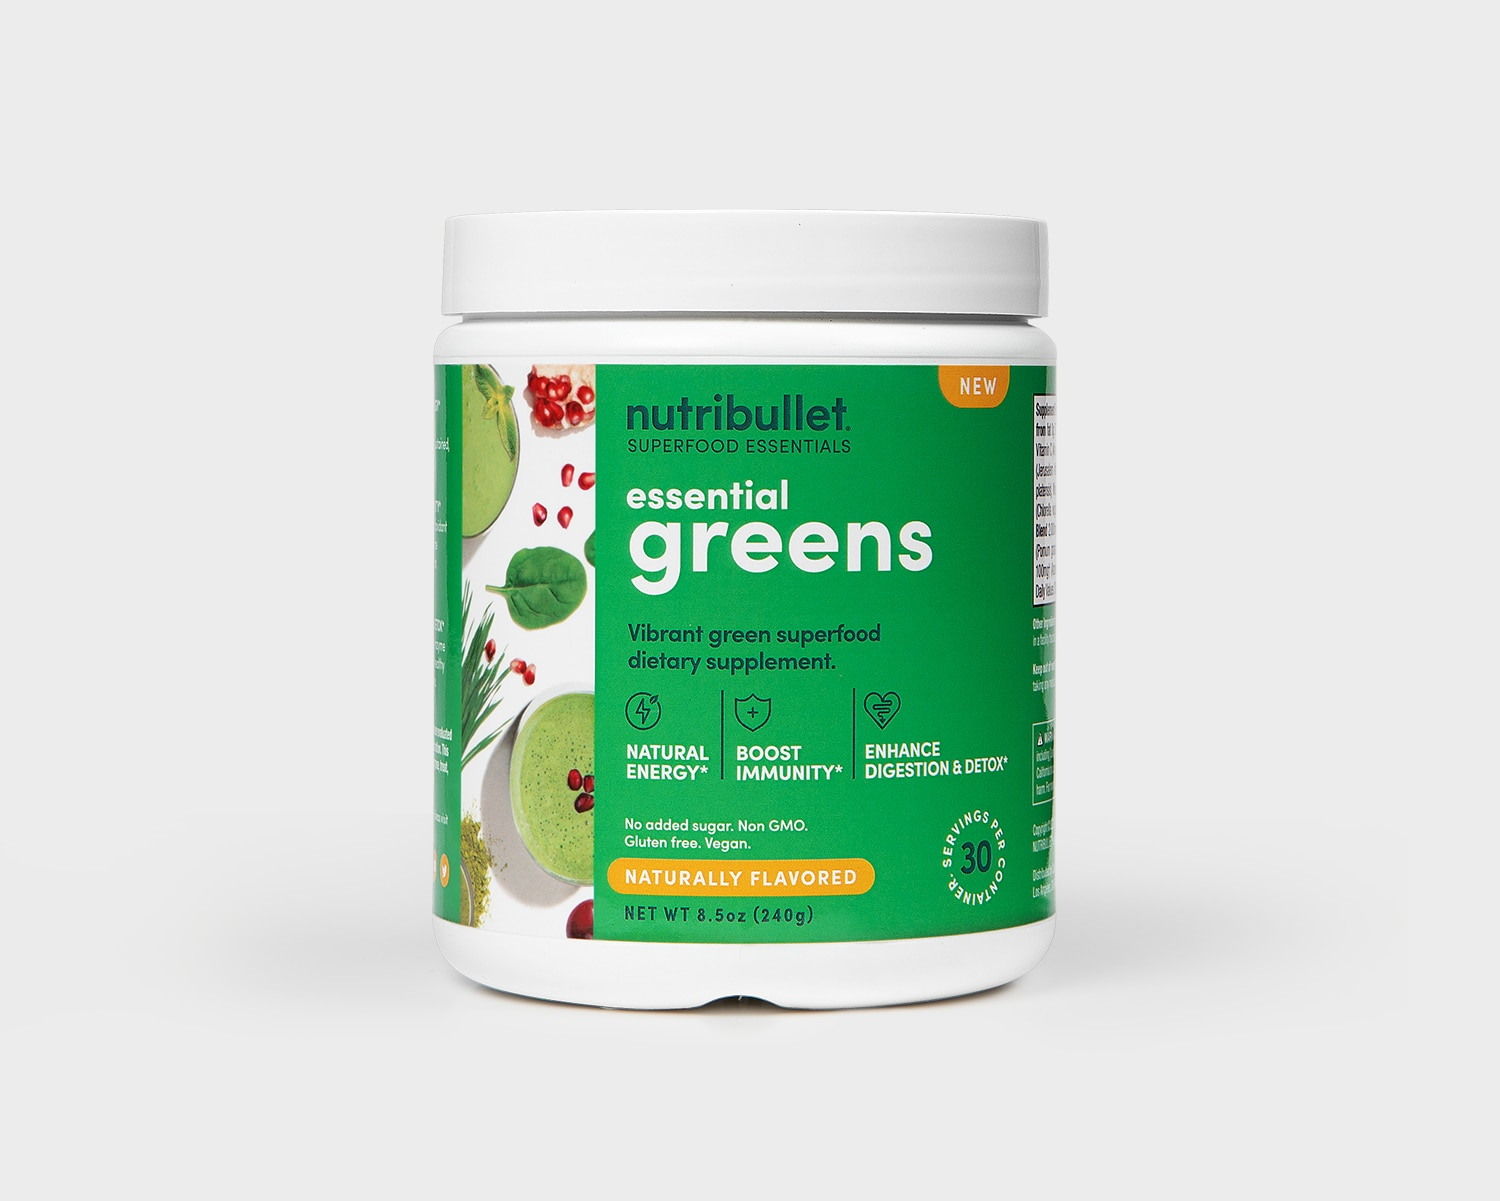 Product preview 1 of 3. Thumbnail nutribullet Essential Greens 30 serving tub with green label and greens and smoothie shown